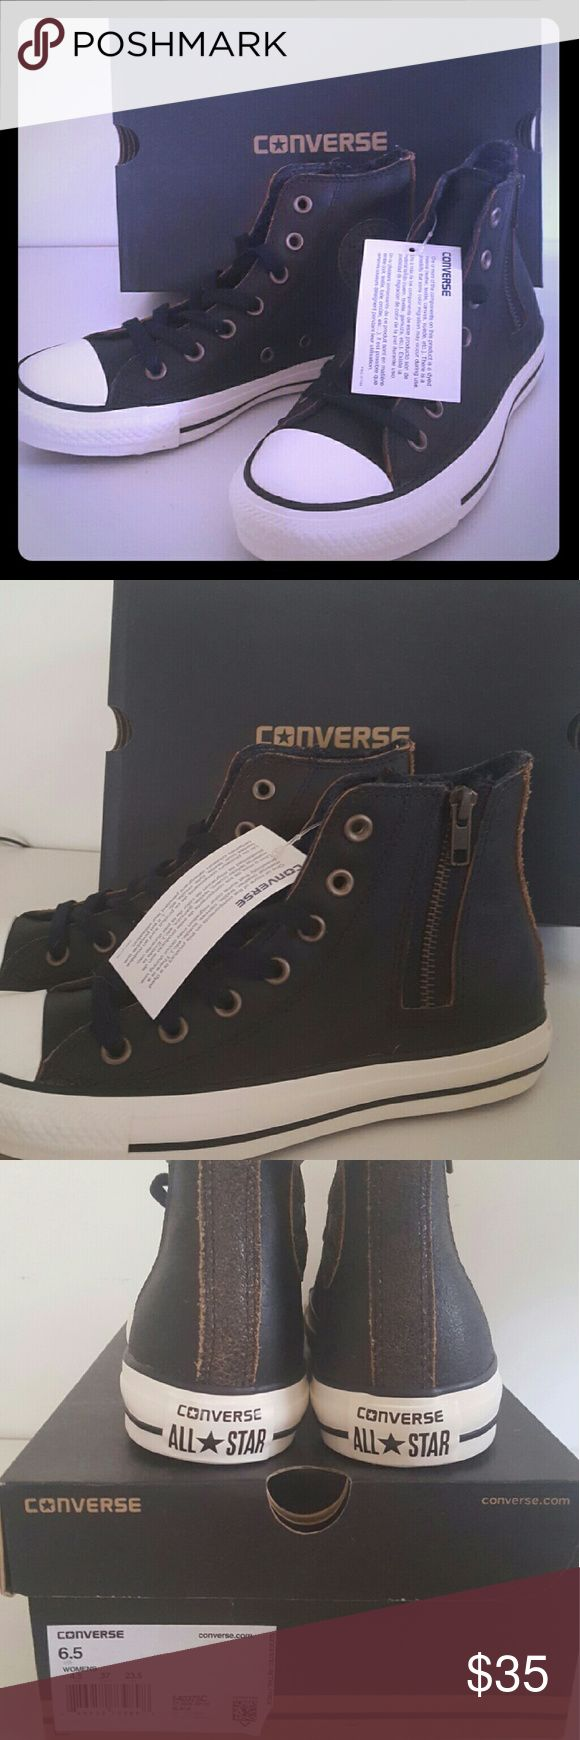 Black Leather Converse Chuck Taylor Size 6.5 Black Leather Converse Chuck Taylor high tops in a size women's 6.5. A side zip detail and black lace up. Never worn, new with tags and original box. Converse Shoes Sneakers